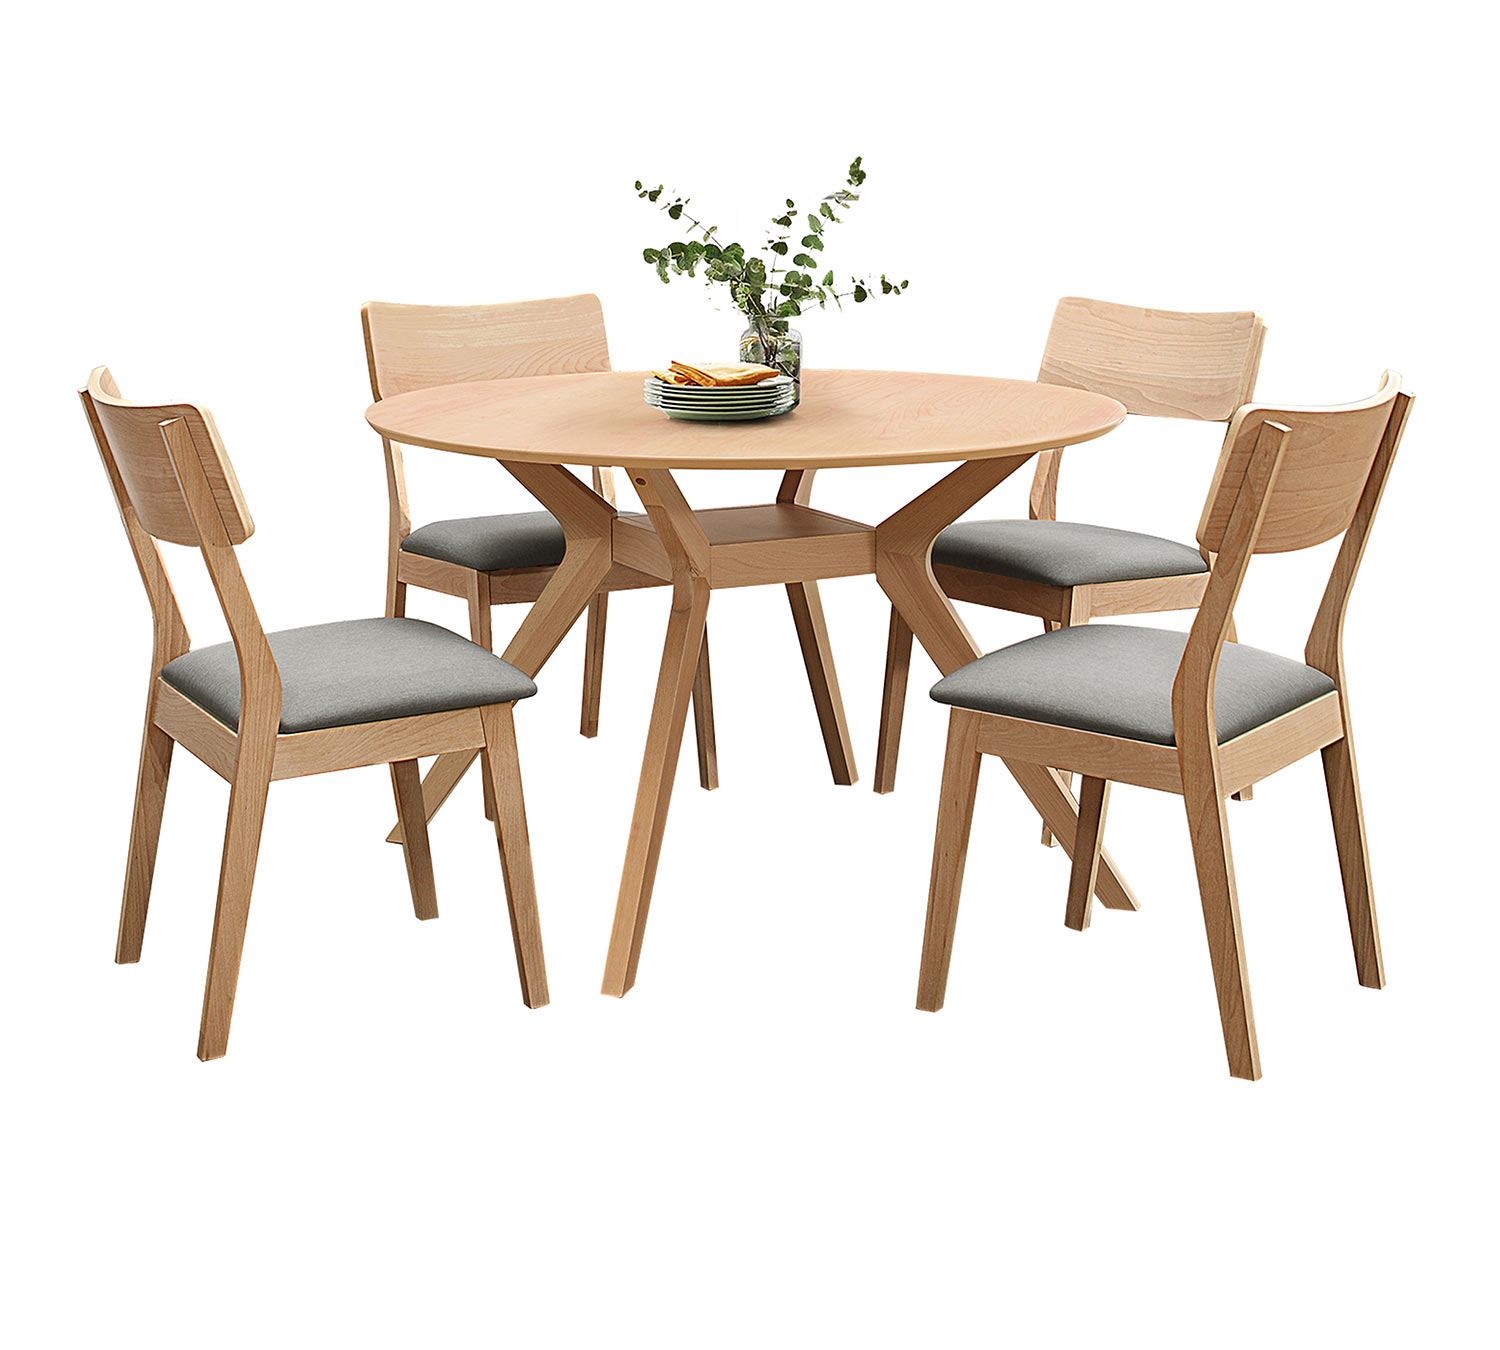 Homelegance Hamar Round Dining Set - Natural